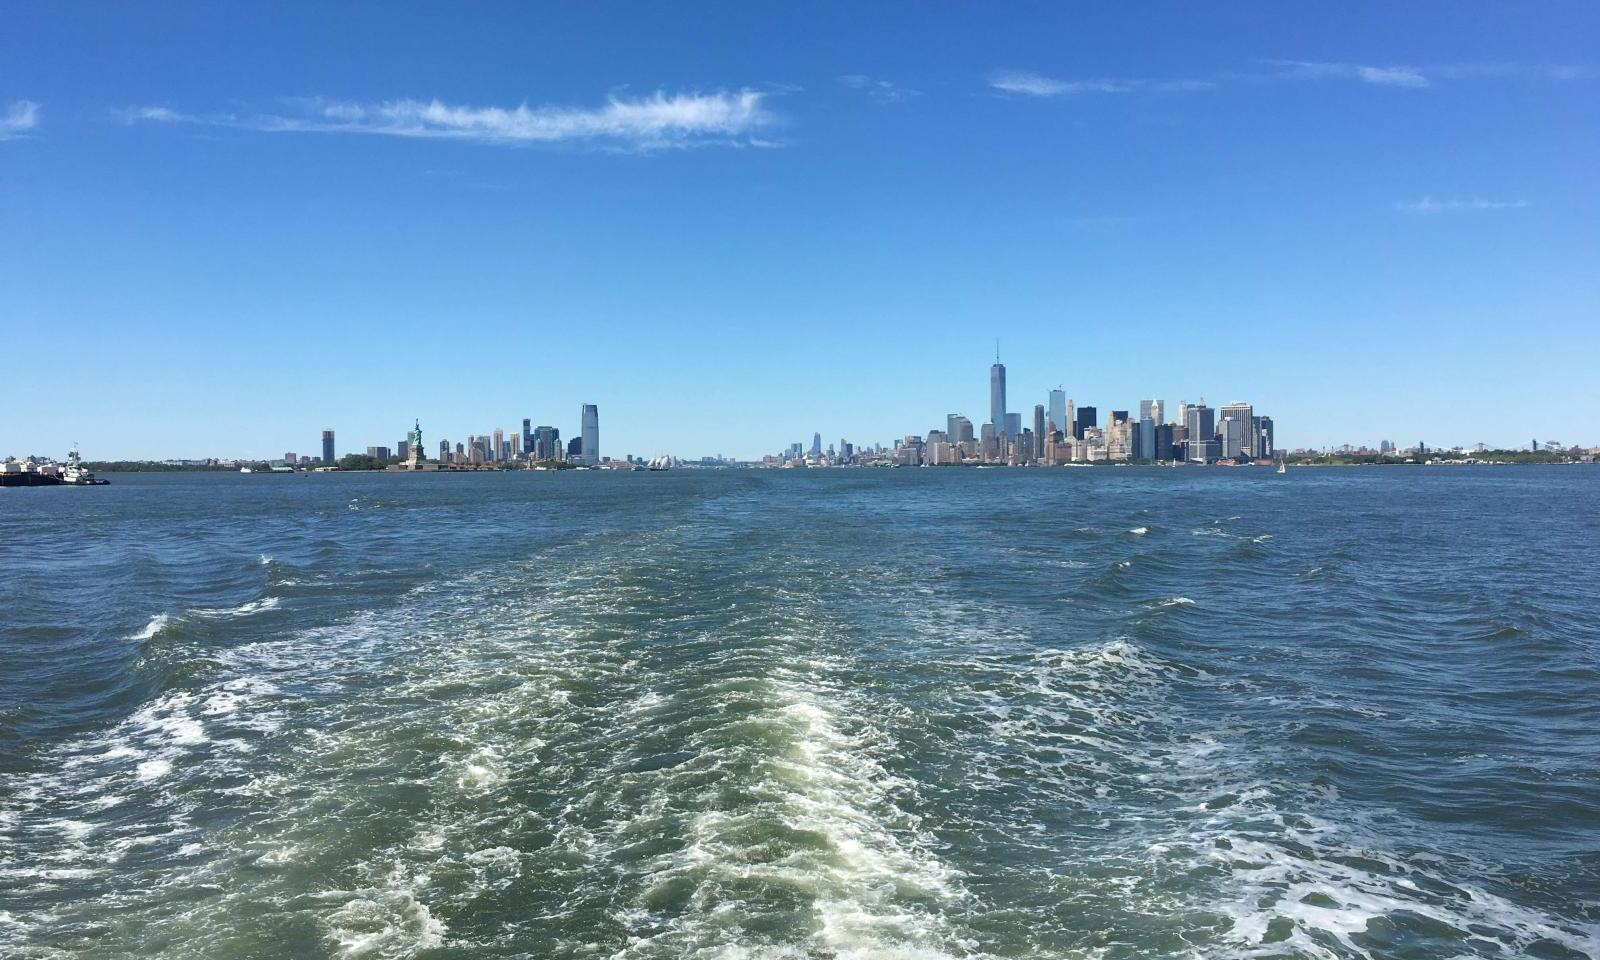 NYC Cruise Boat Tour